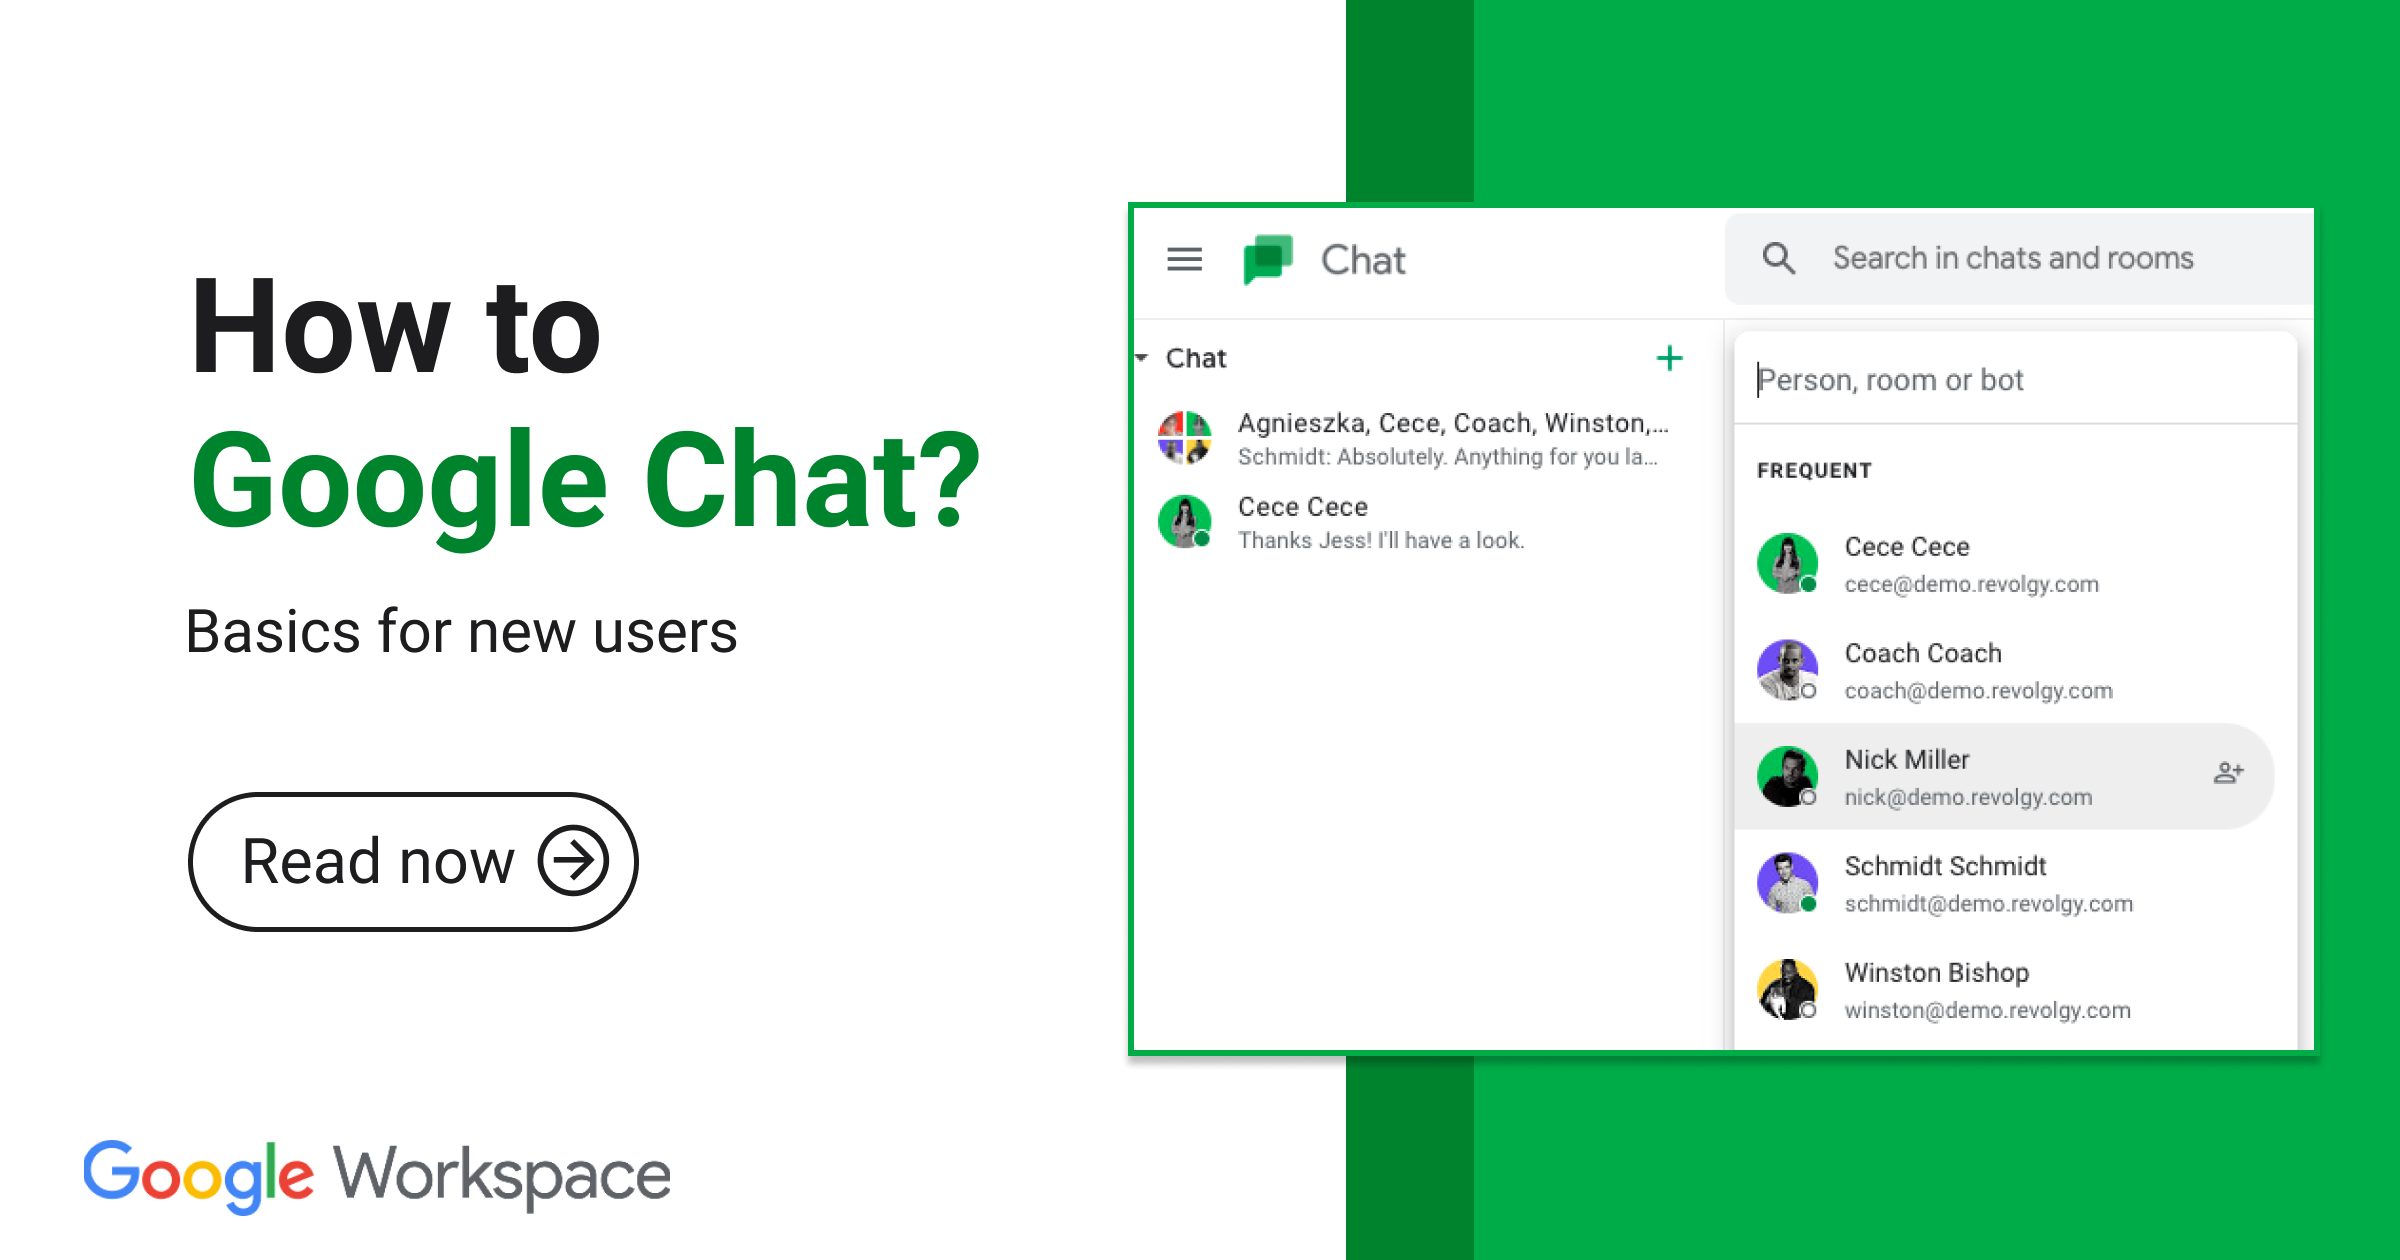 Blogpost_ How to Google Chat